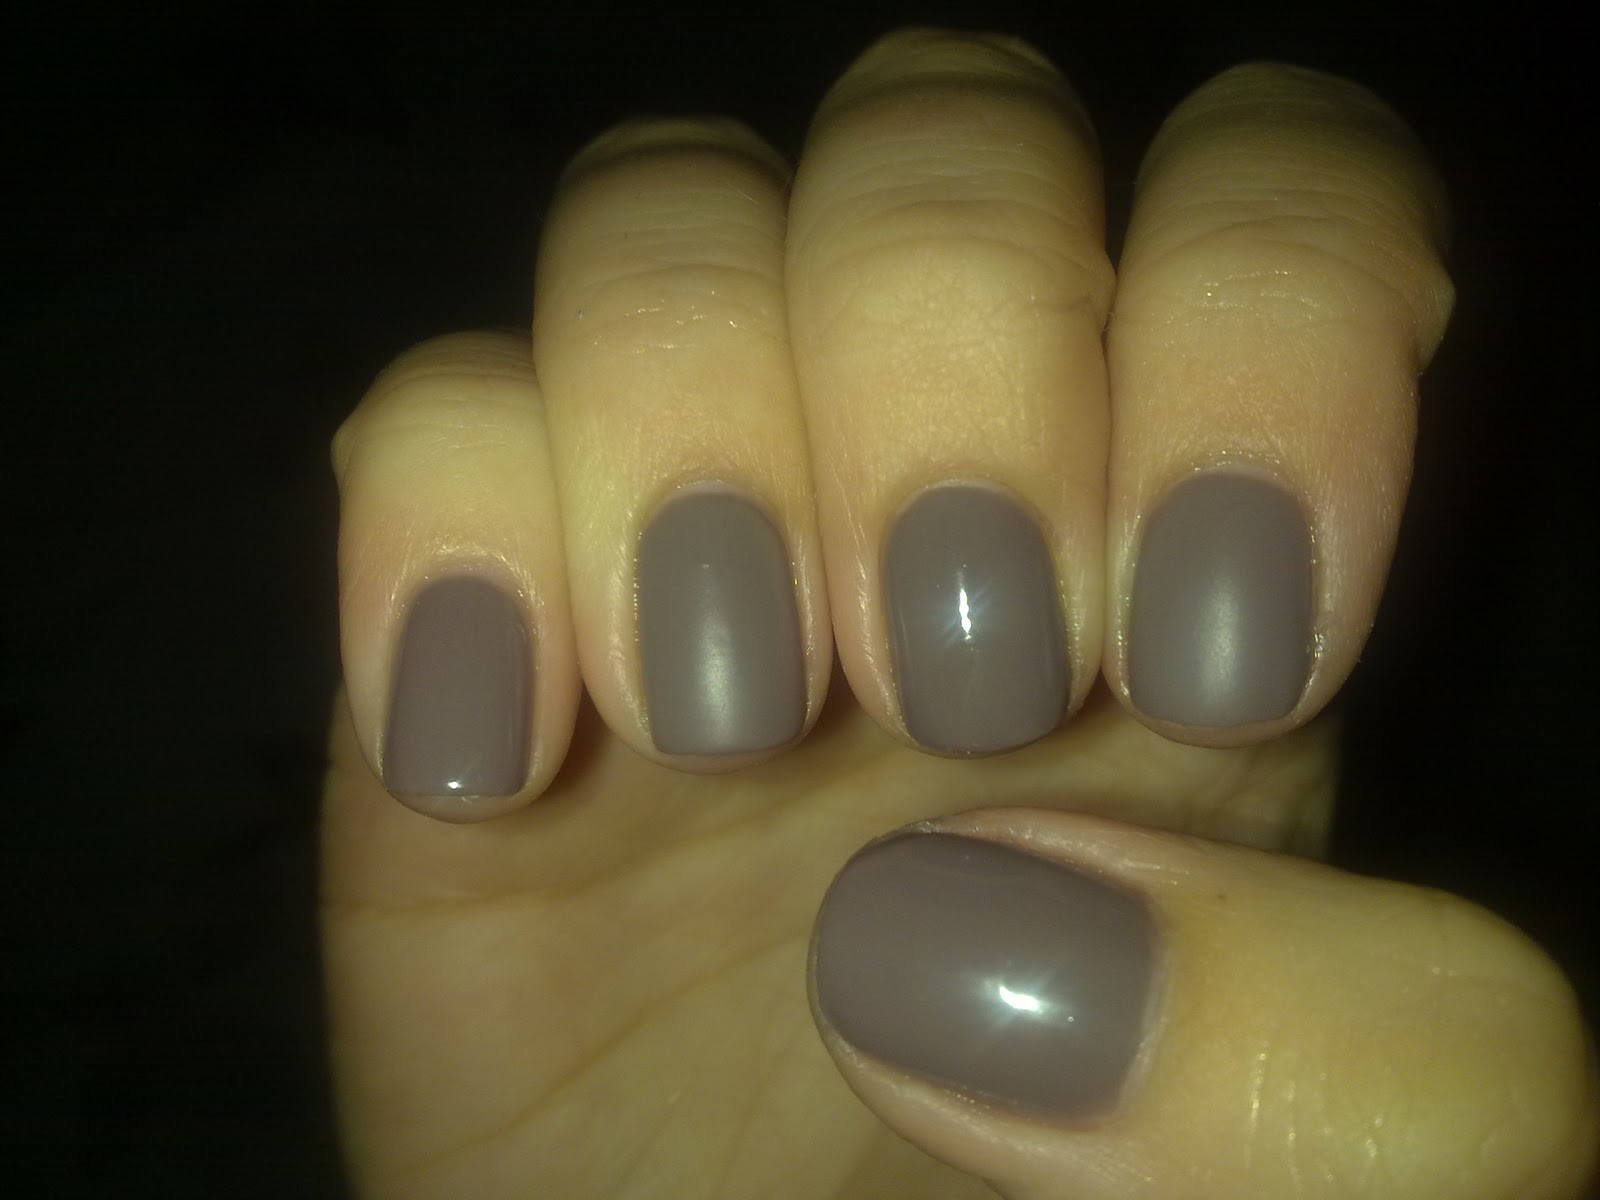 030120112175 Military Style Manicure